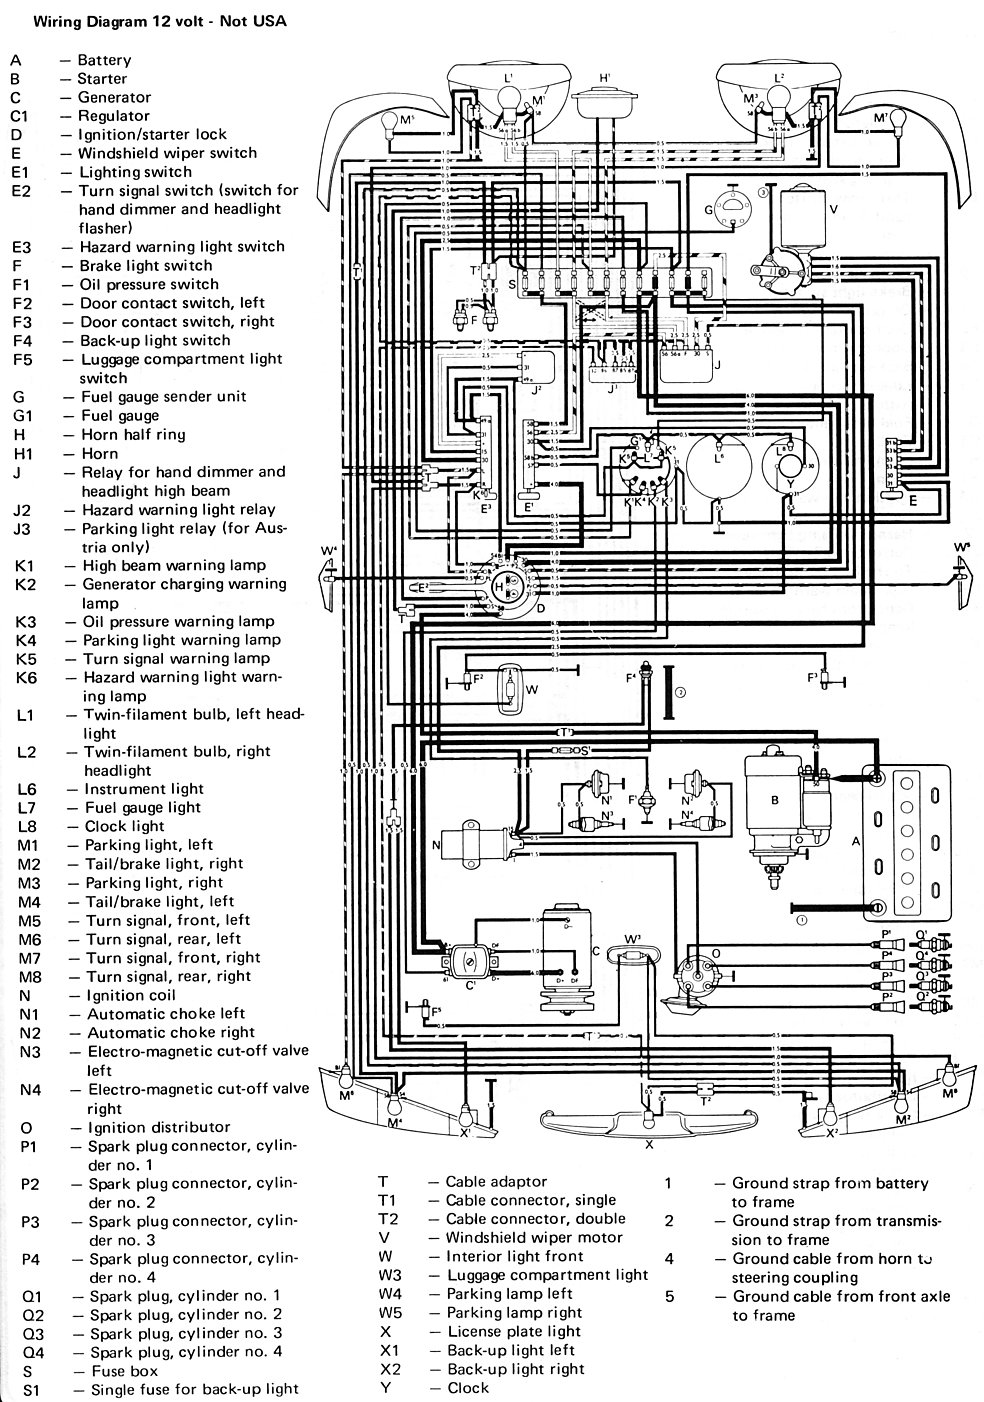 1974 corvette wiring diagram  corvette  auto wiring diagram